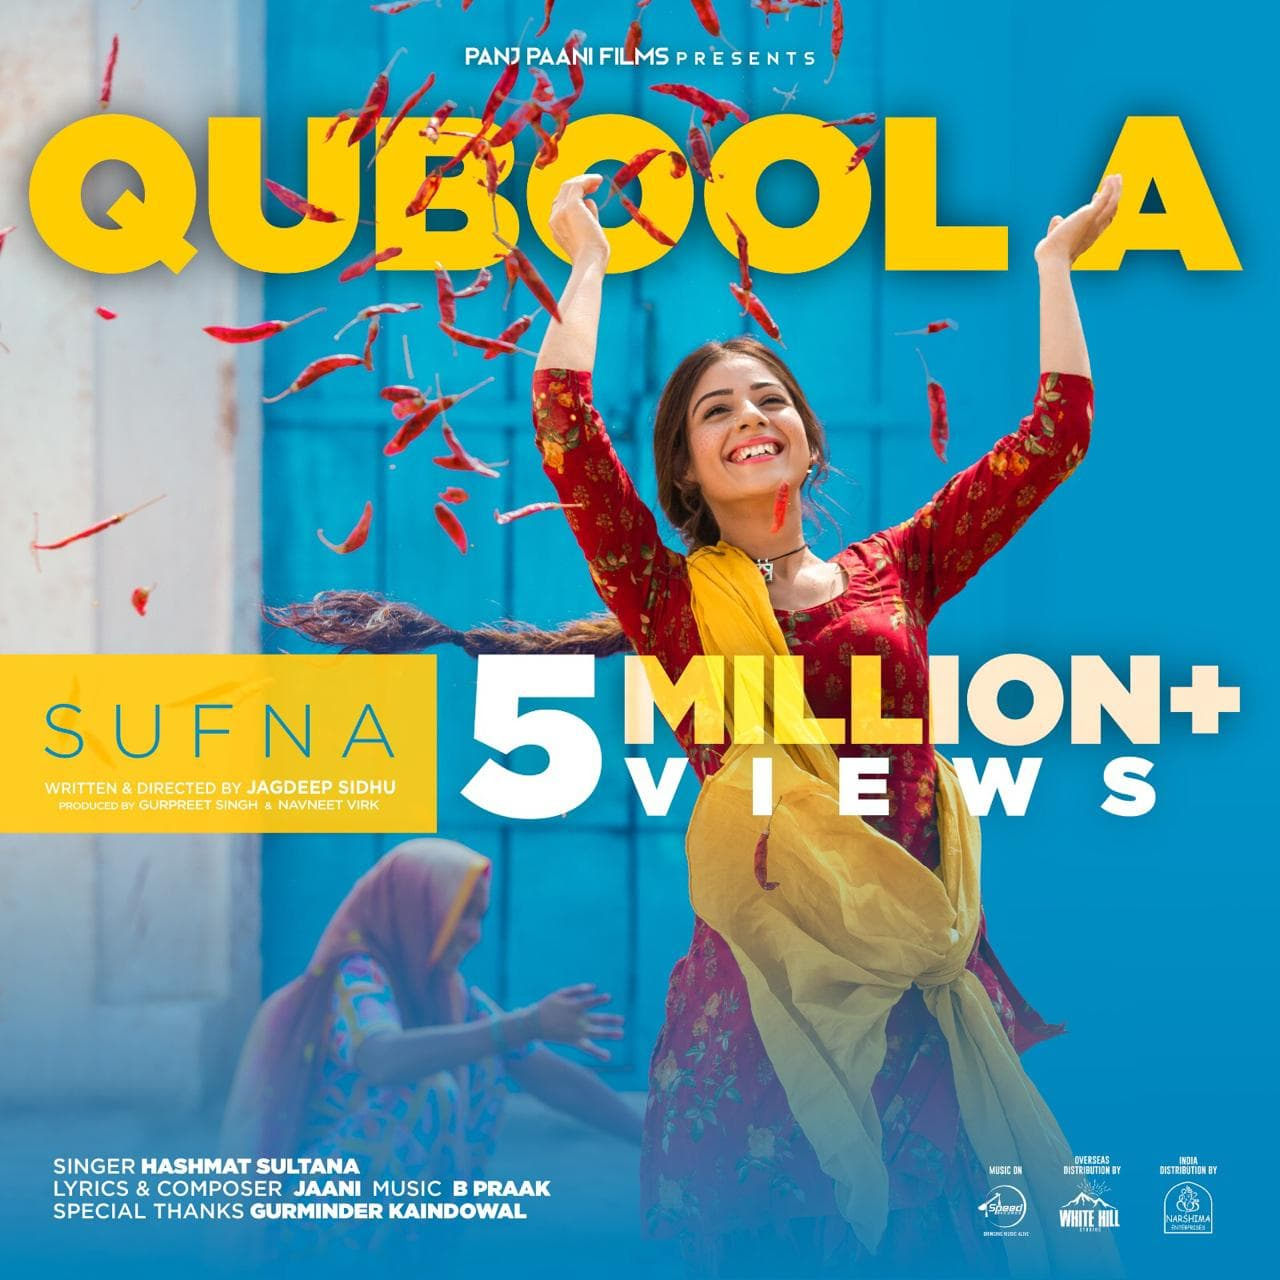 qubool a 5 million plus views